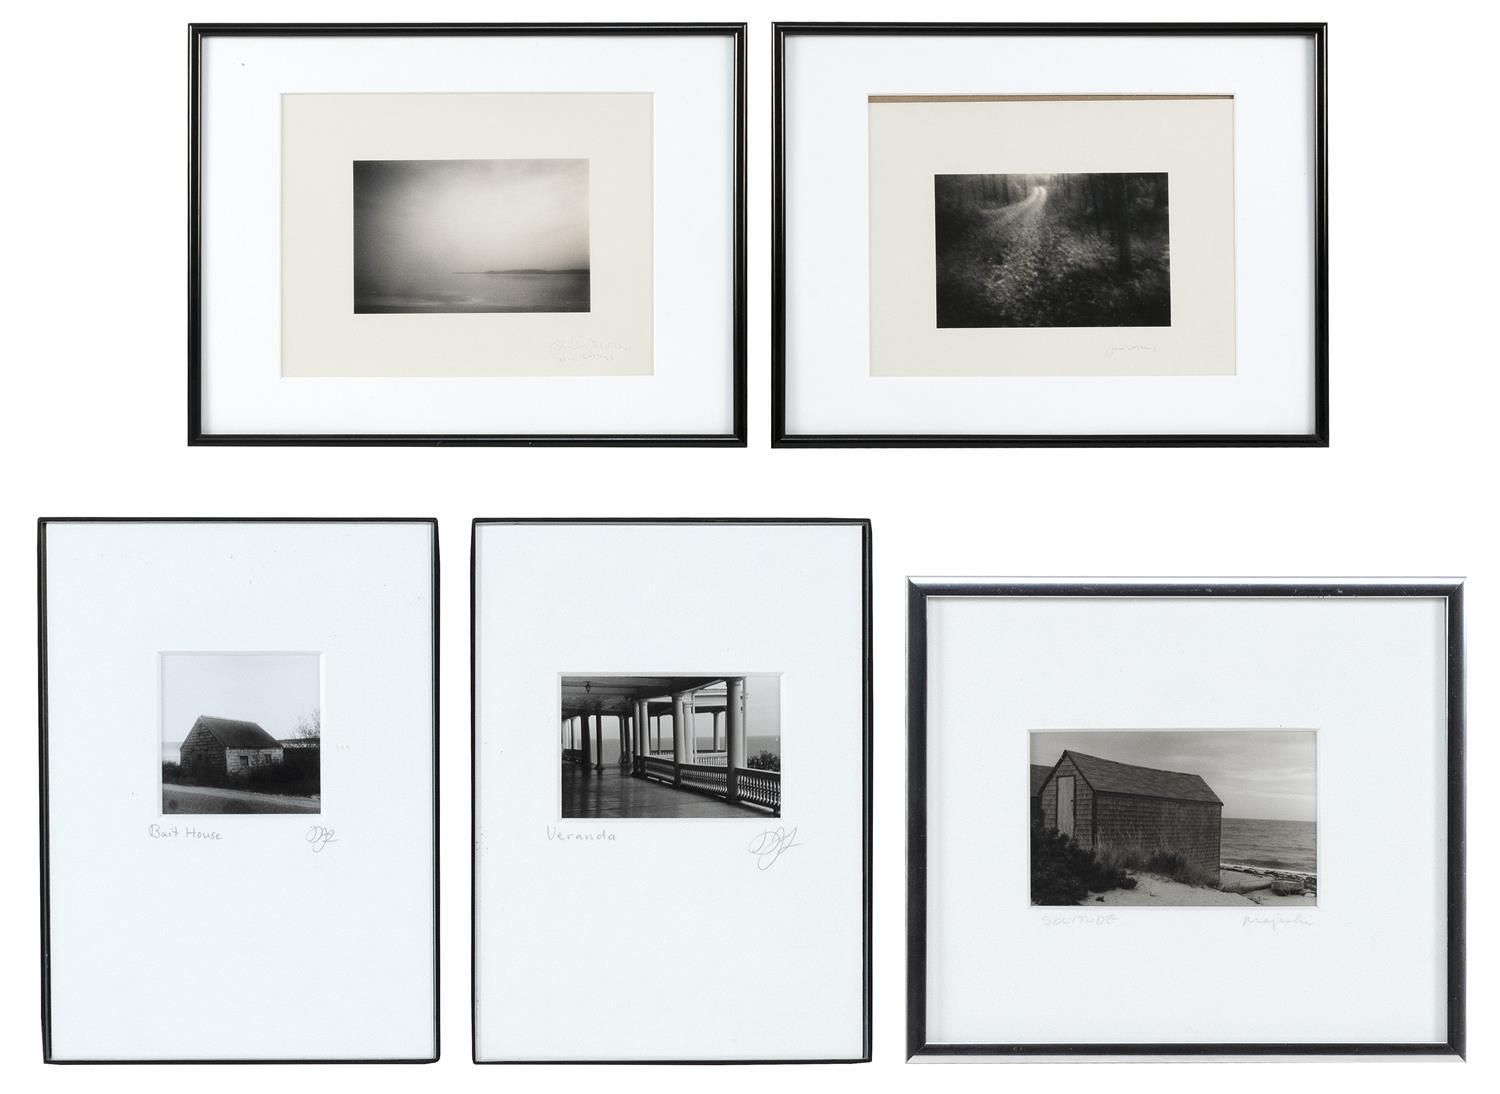 """JANE BOOTH VOLLERS, United States, Contemporary, Two silver gelatin prints depicting Cape Cod, Massachusetts,, 4"""" x 6"""" and approx. 3..."""